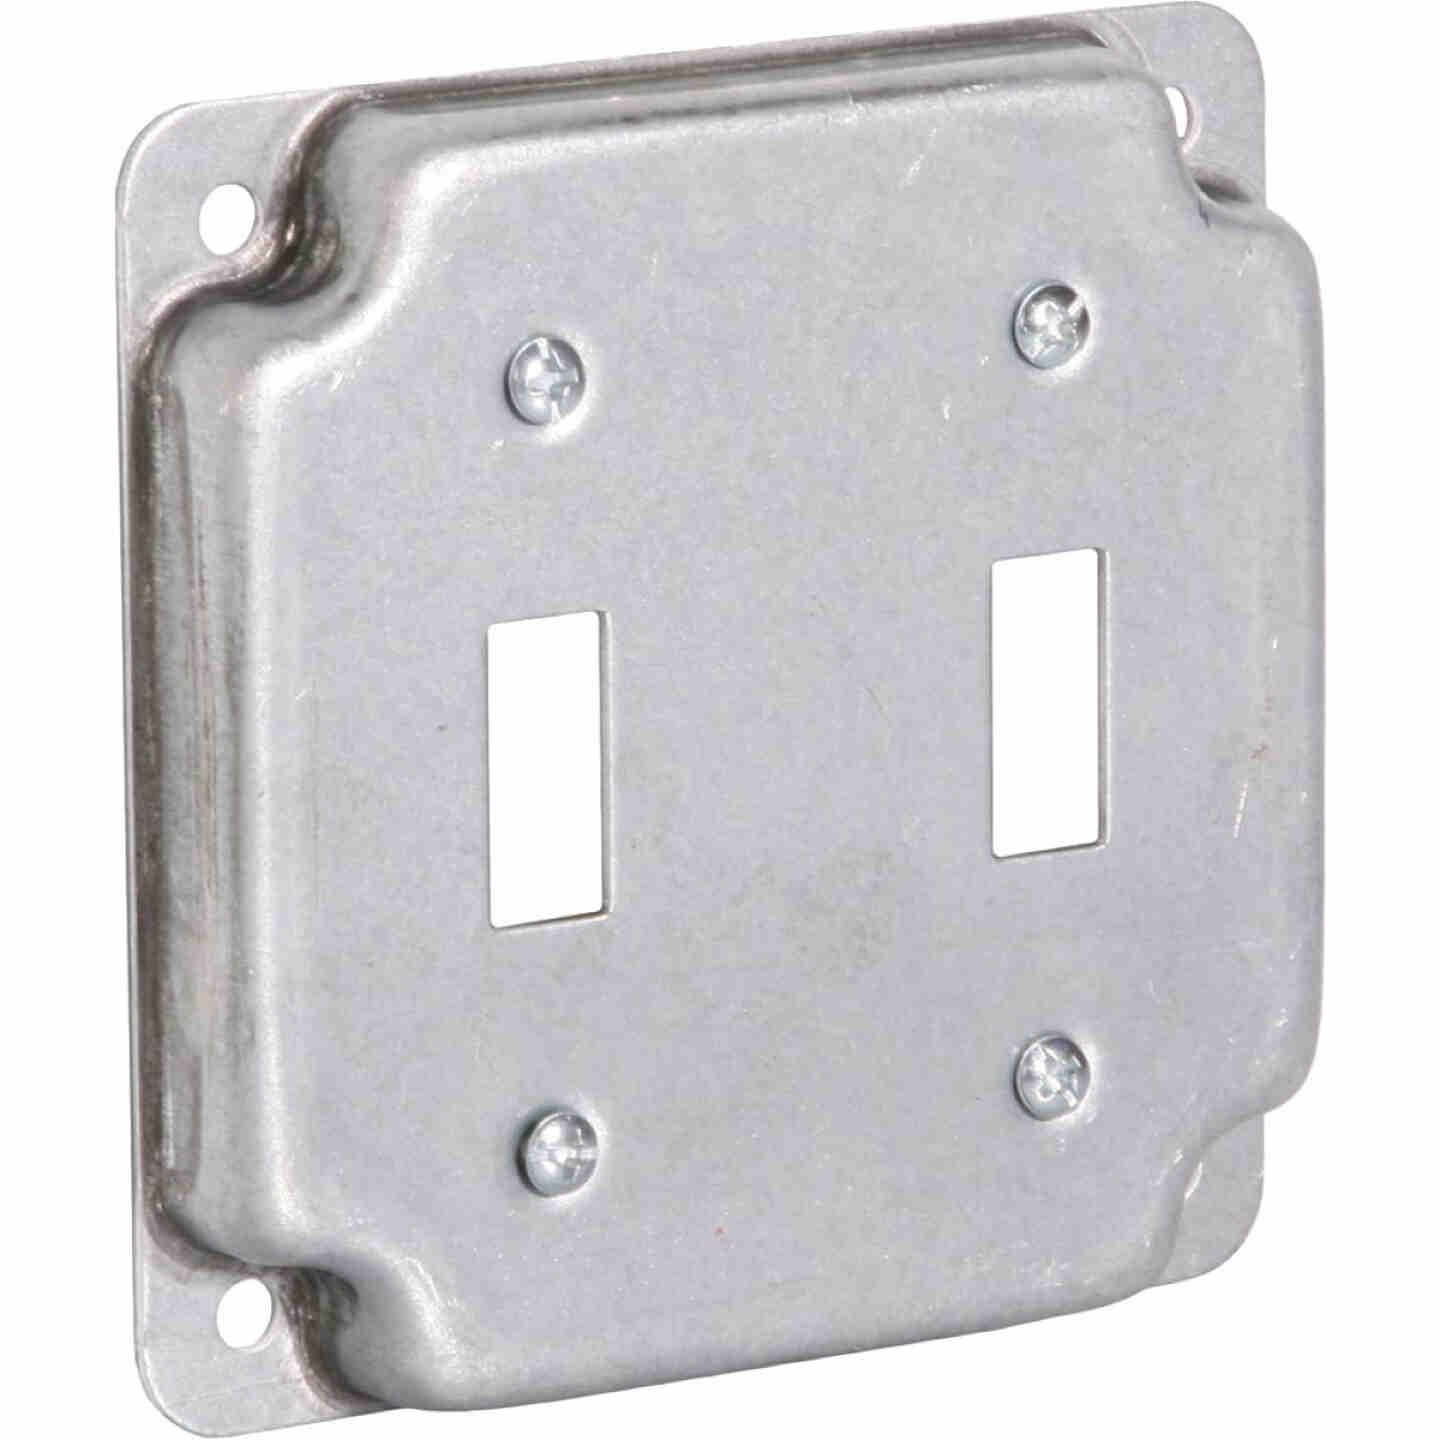 Raco 2-Toggle Switch 4 In. x 4 In. Square Device Cover Image 1